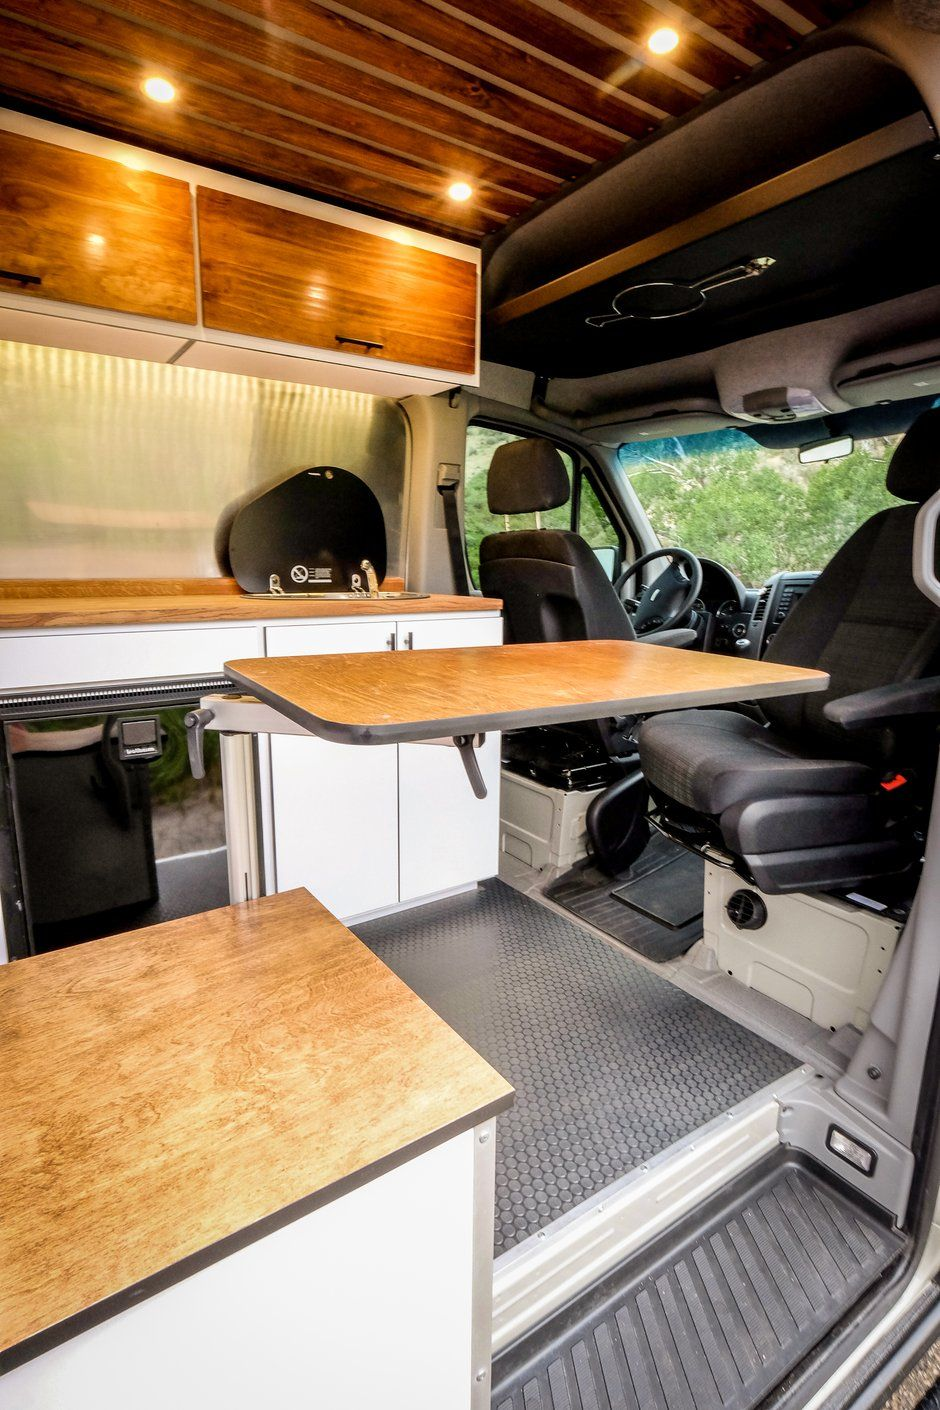 Lagun vanboatrv table leg table top not included camper van